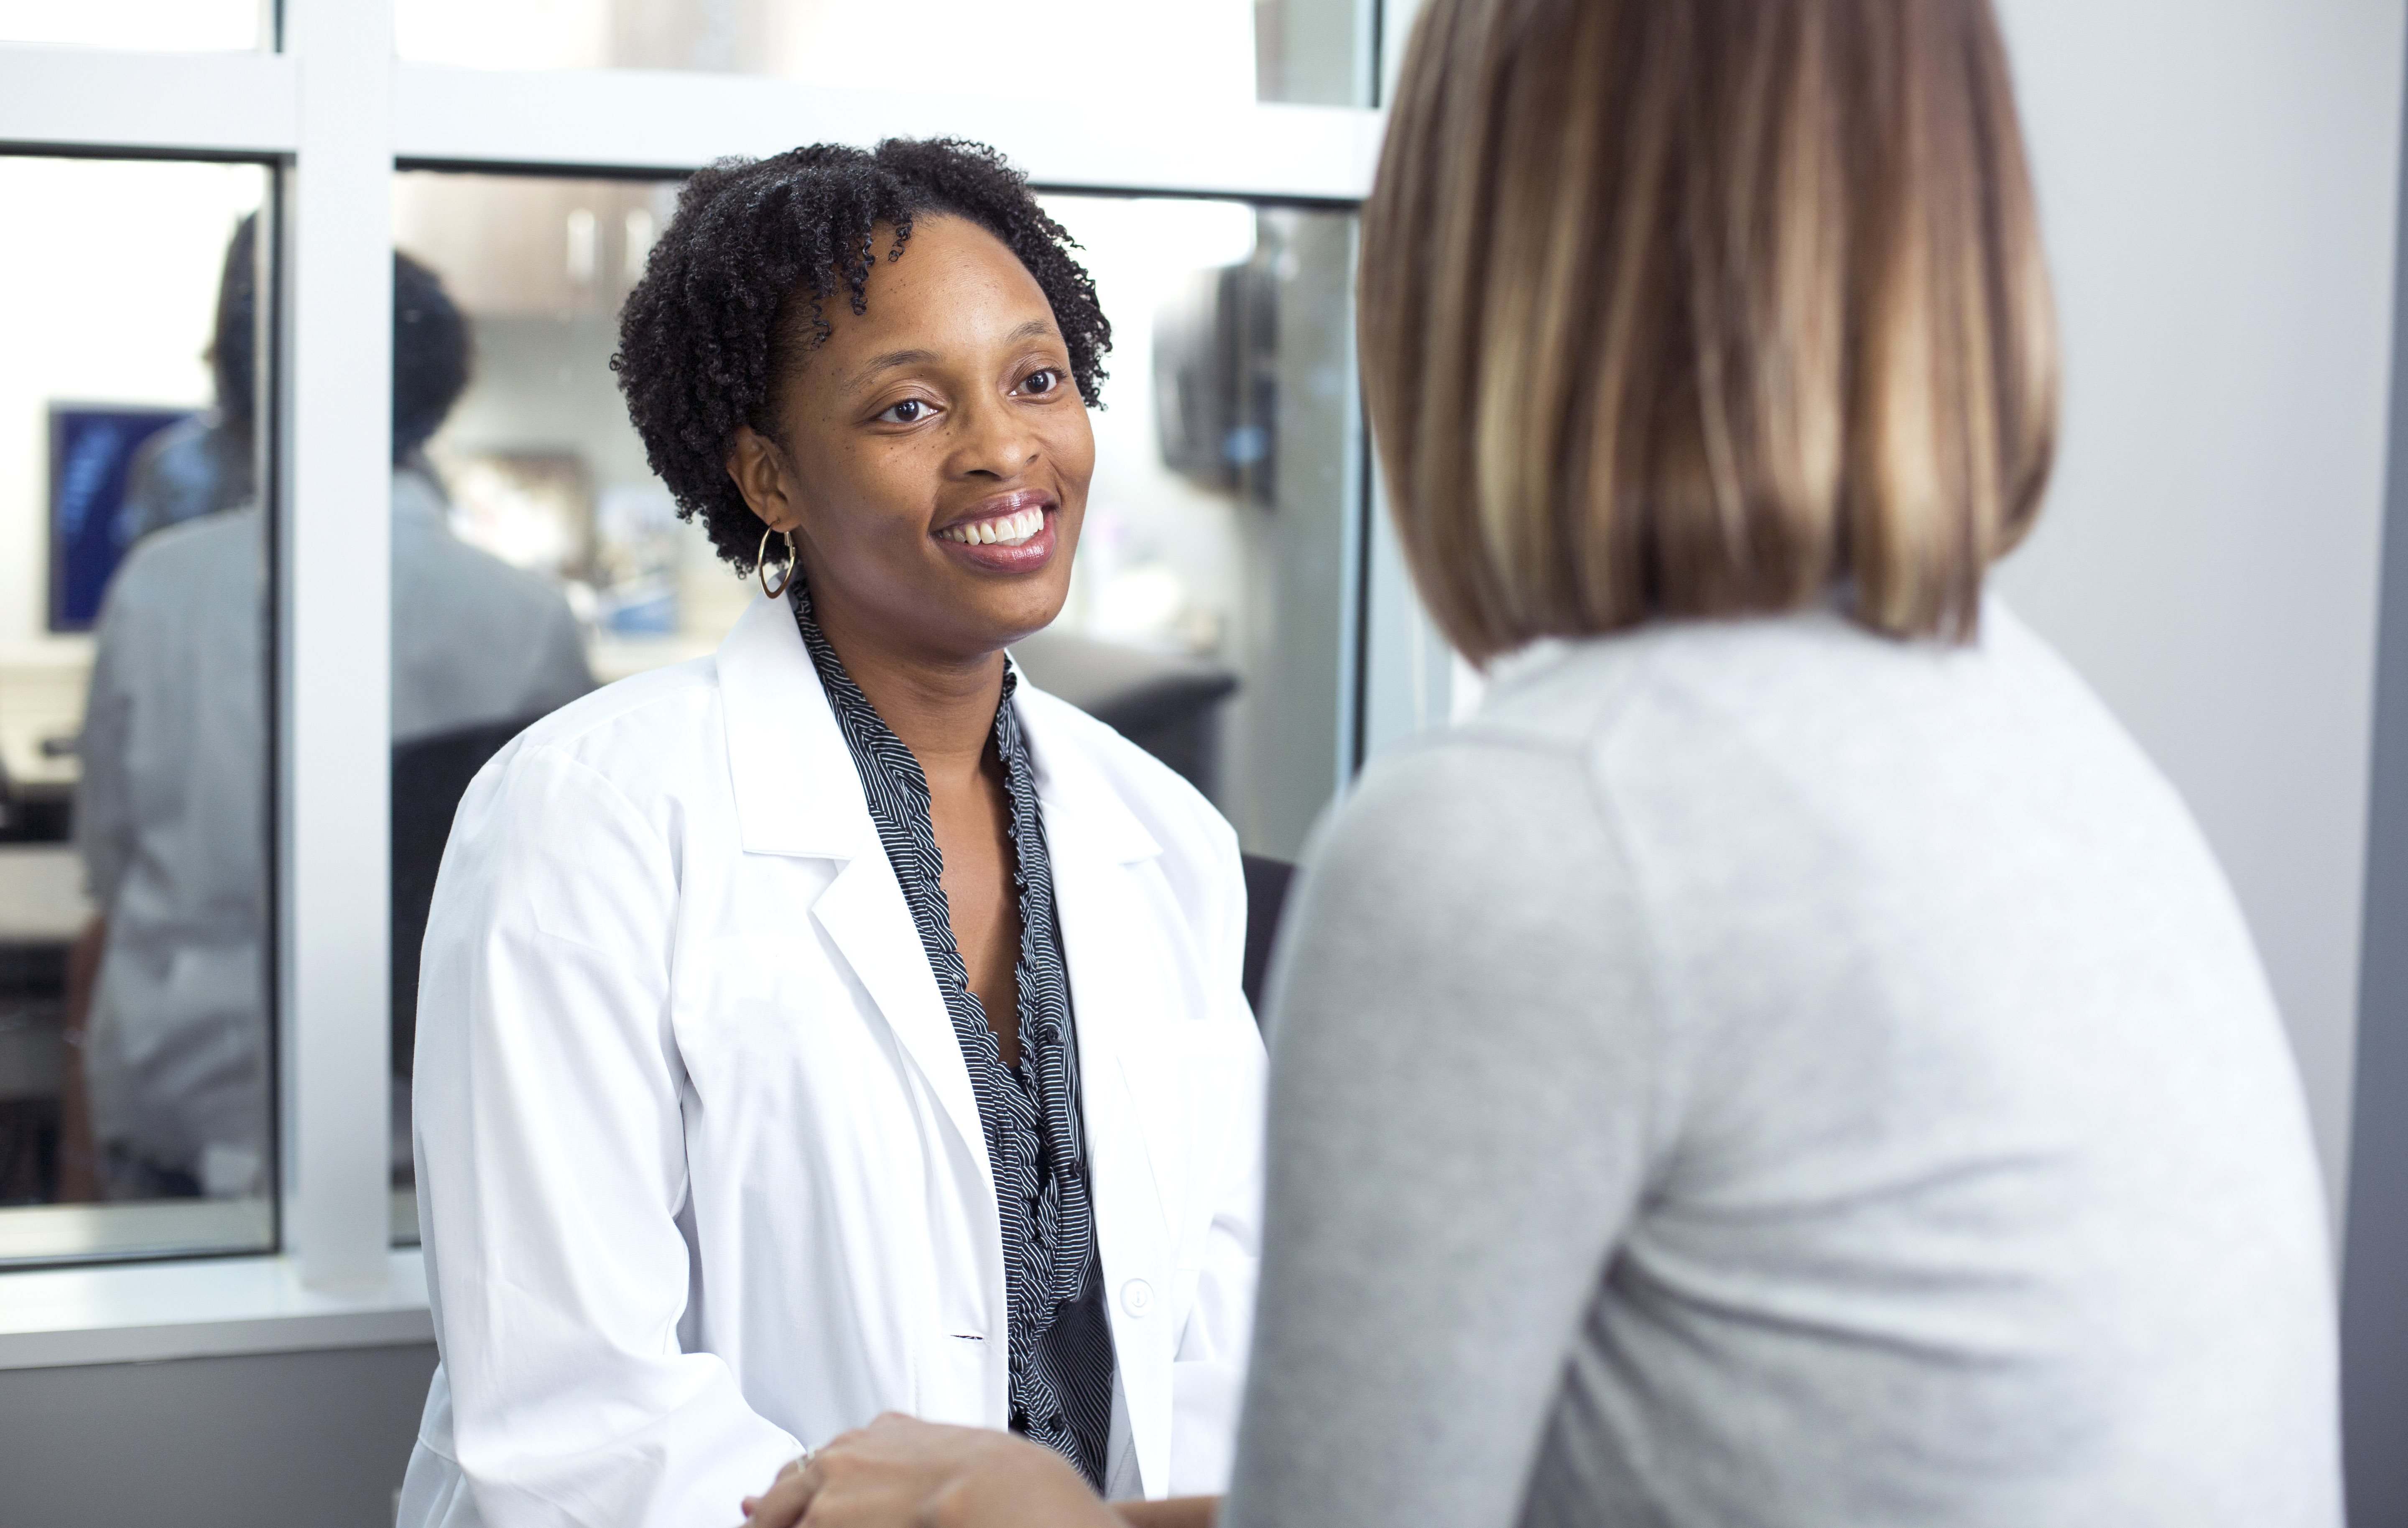 When someone in your family is sick, injured or needs a vaccine it is good to have a convenient healthcare option available. CareNow Urgent Care clinics make it easier for families to obtain healthcare by accepting walk-ins, offering web check-in and extended hours at more than 100 clinics across the country.